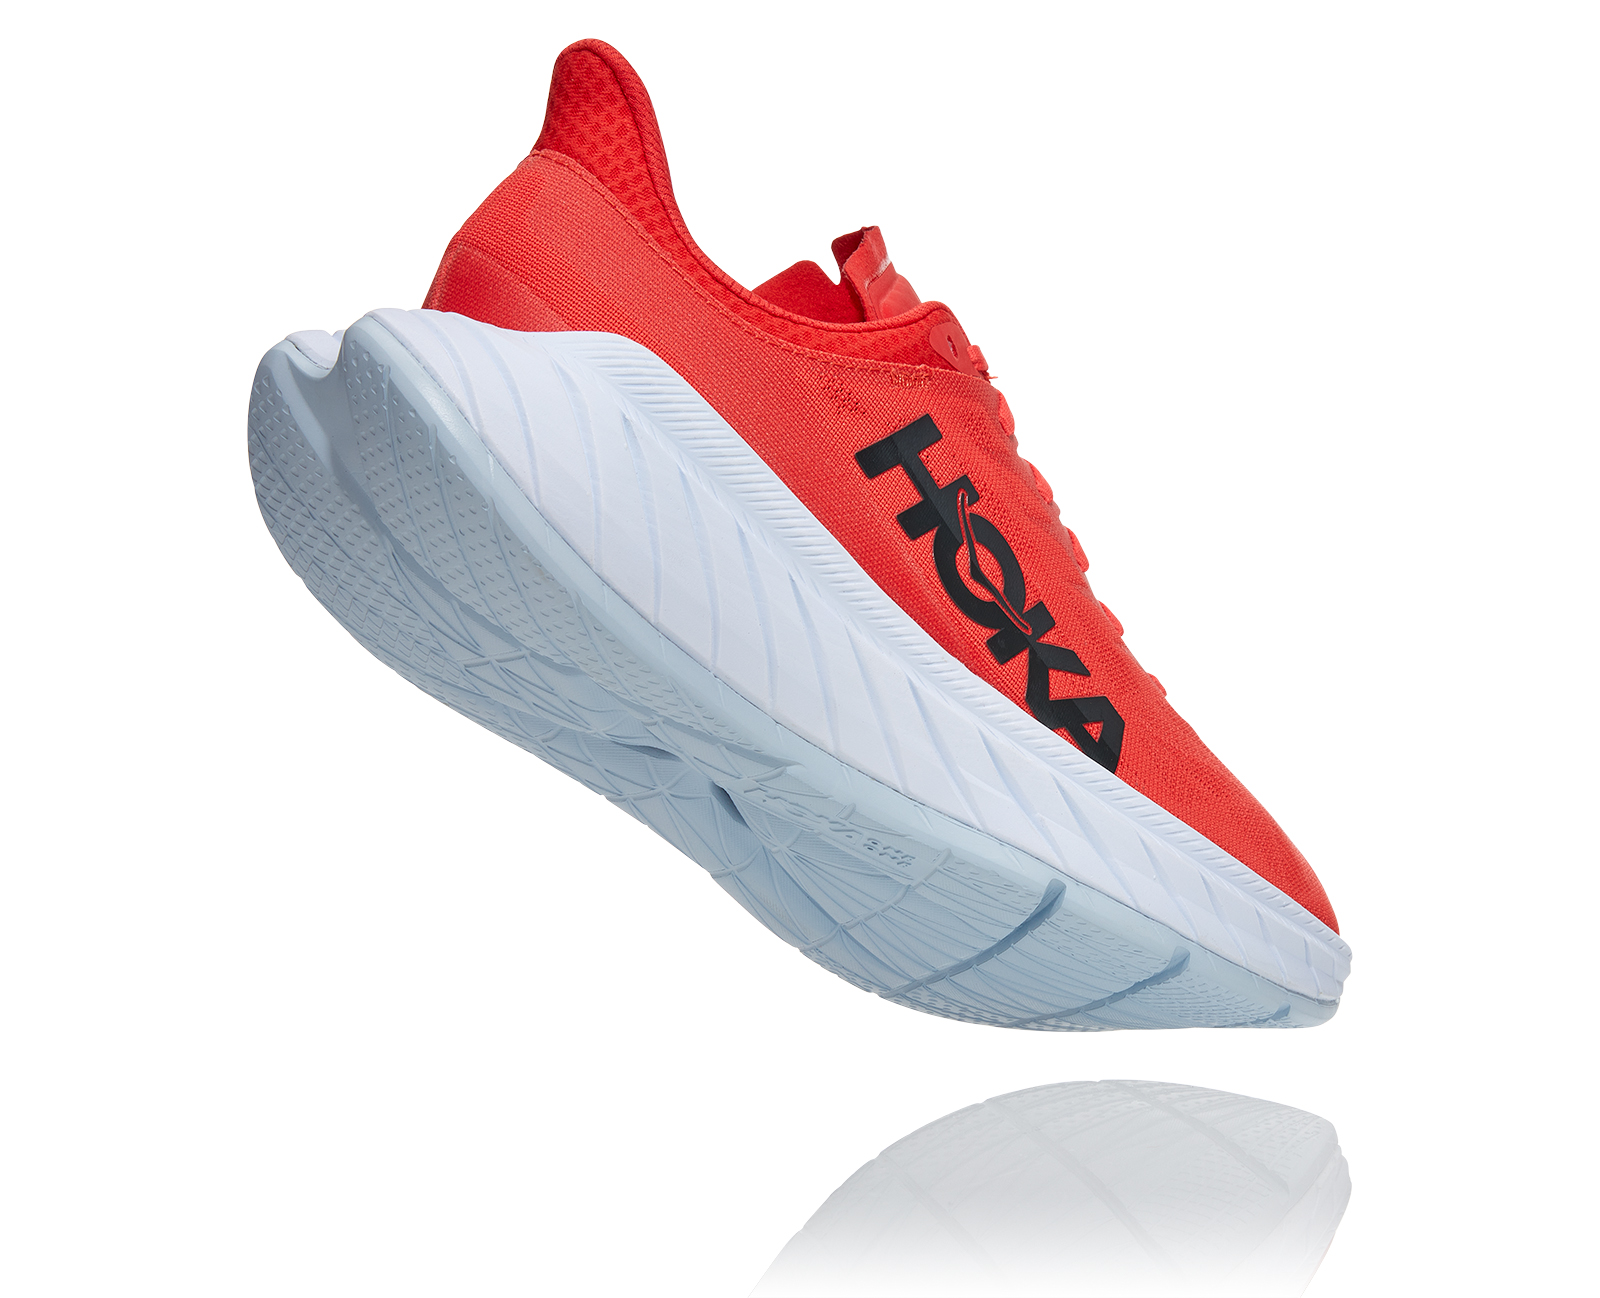 HOKA CARBON X 2 - MEN'S